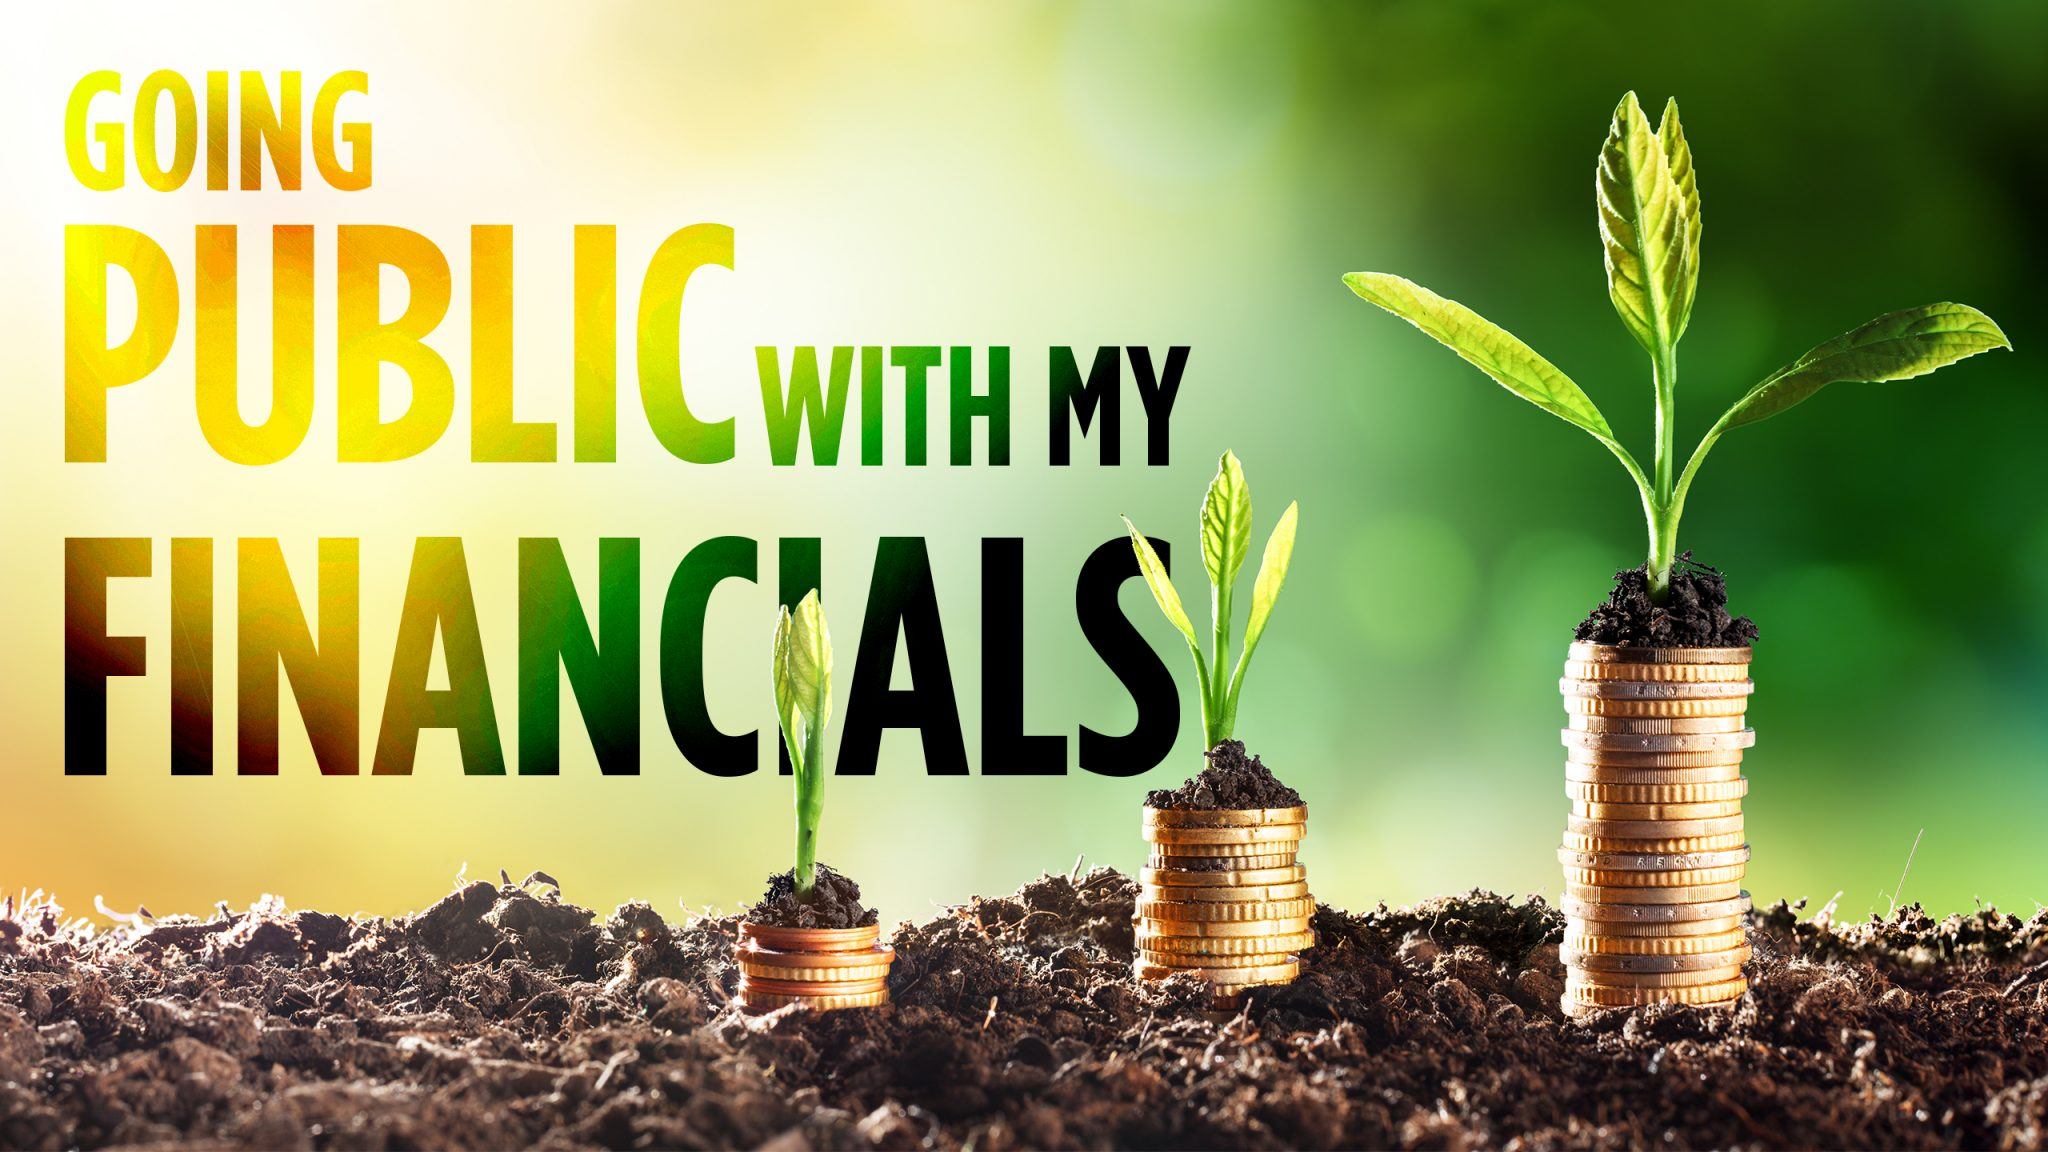 Going Public with my Financials